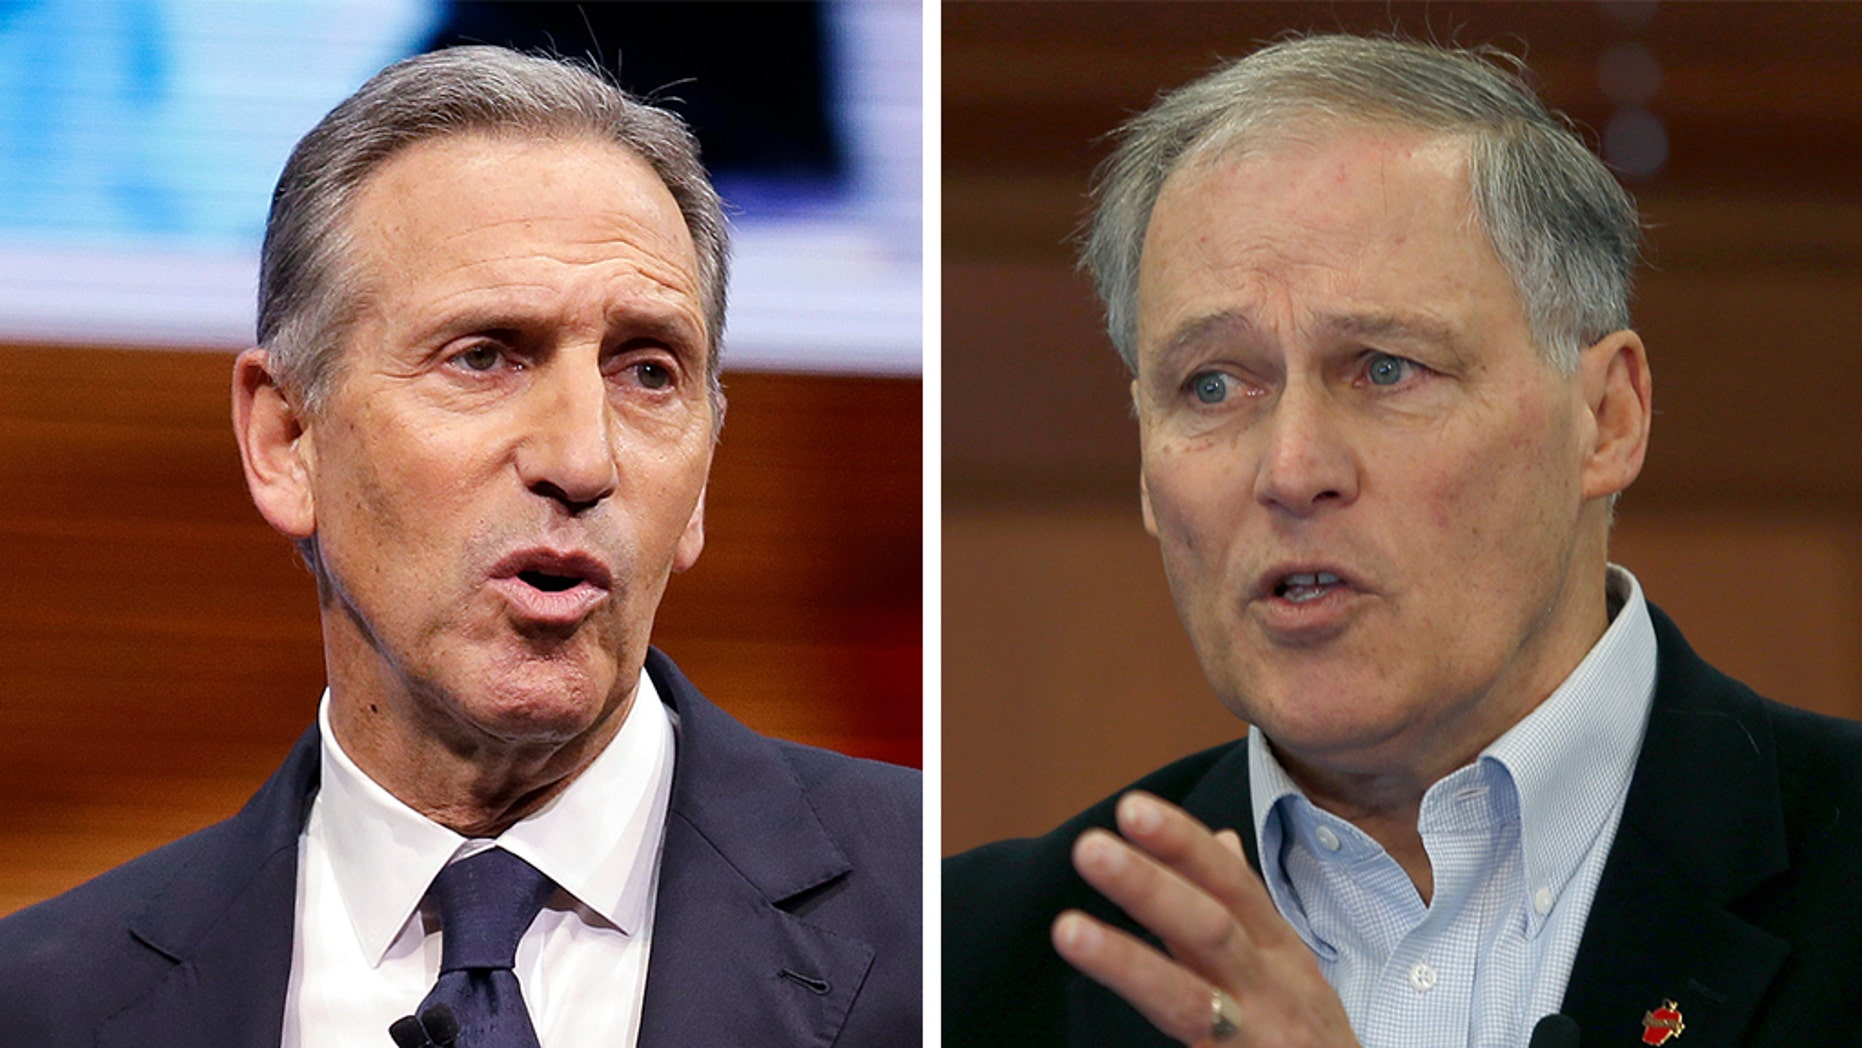 Washington Gov. Jay Inslee, right, is the latest Democrat to oppose the prospective presidential bid of former Starbucks CEO Howard Schultz, insisting that an independent run unintentionally would help President Trump win another four years in office. (AP)